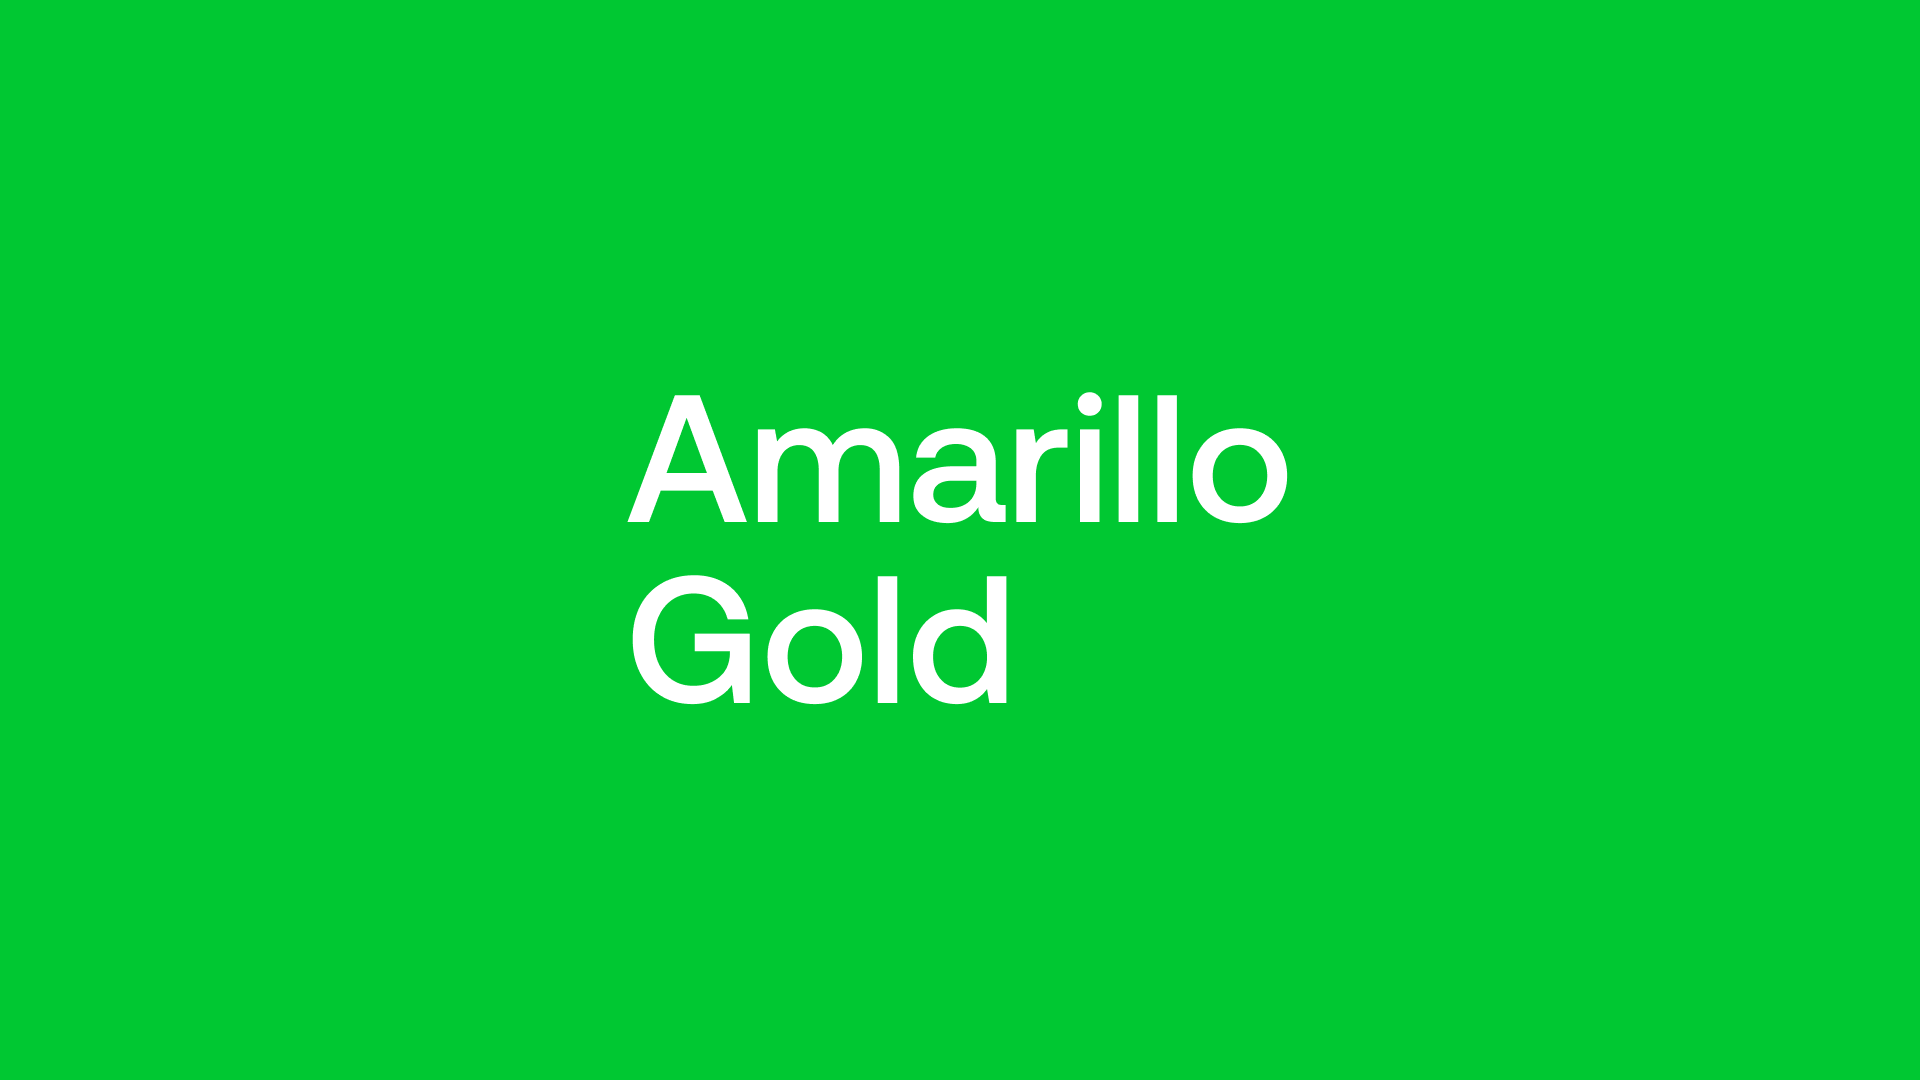 Amarillo Gold (AGC) - Focus is on Project Finance for April 2022